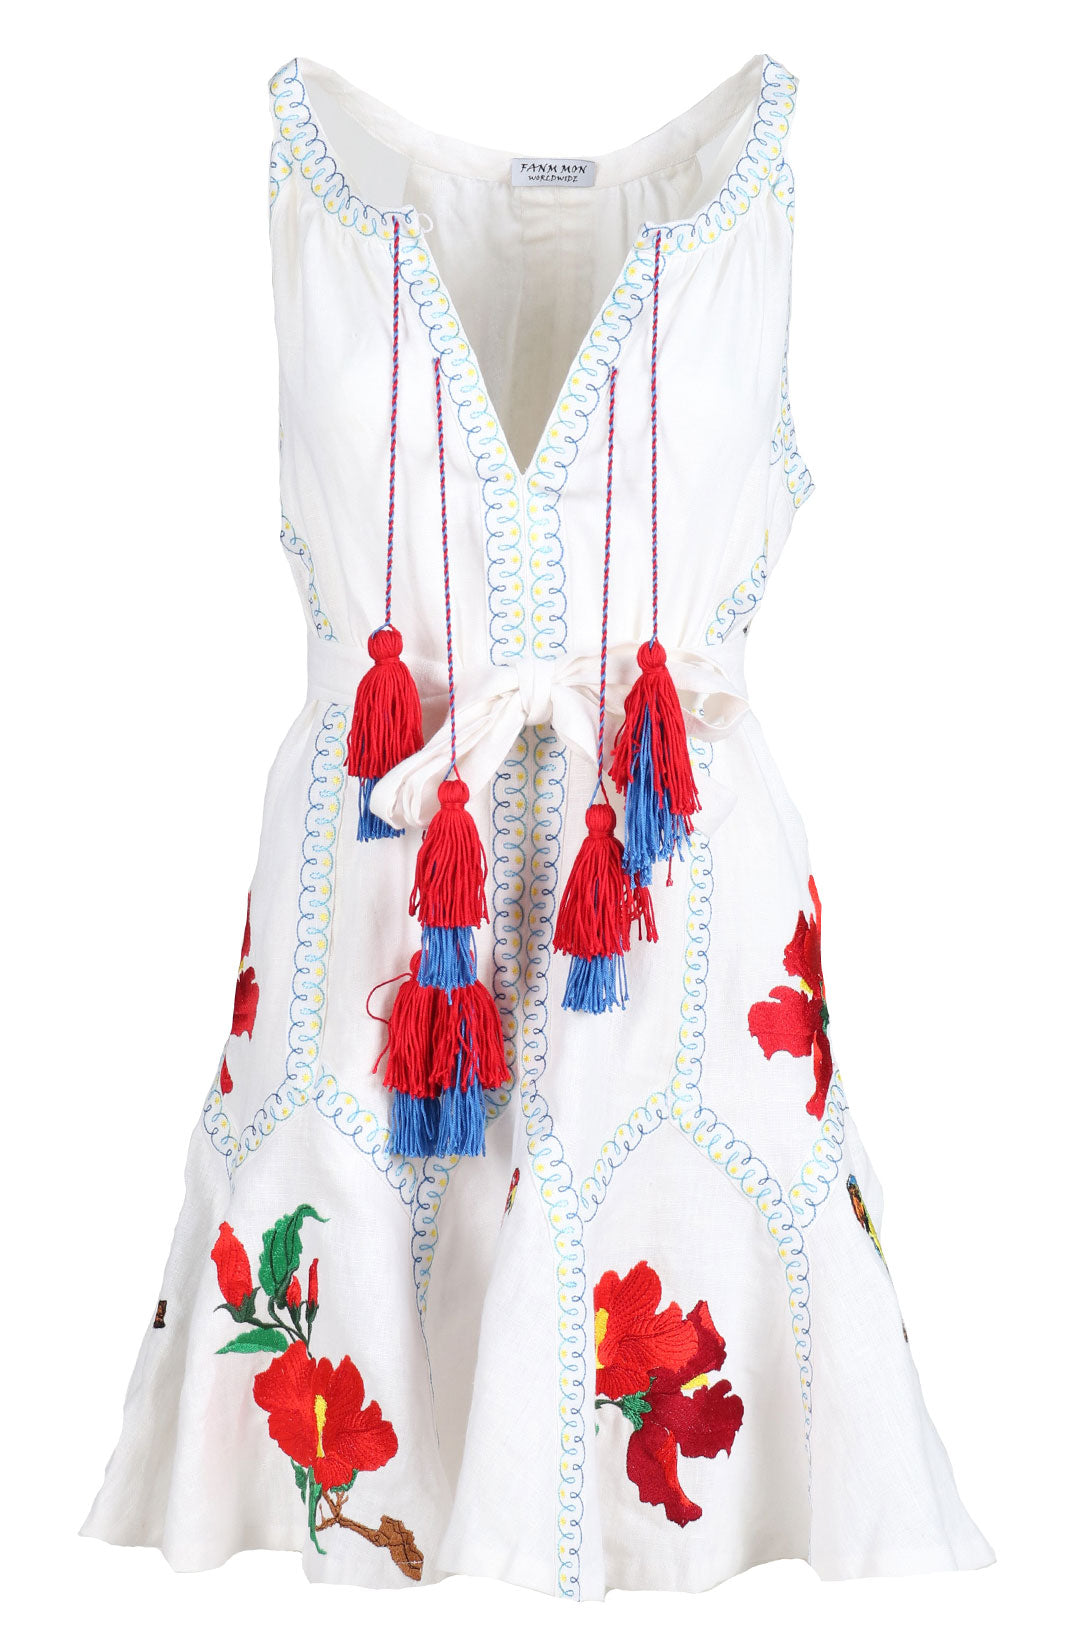 Fanm Mon ASTER White Linen Exotic Tropical Floral Embroidery Vyshyvanka MINI Dress size XS-XXL